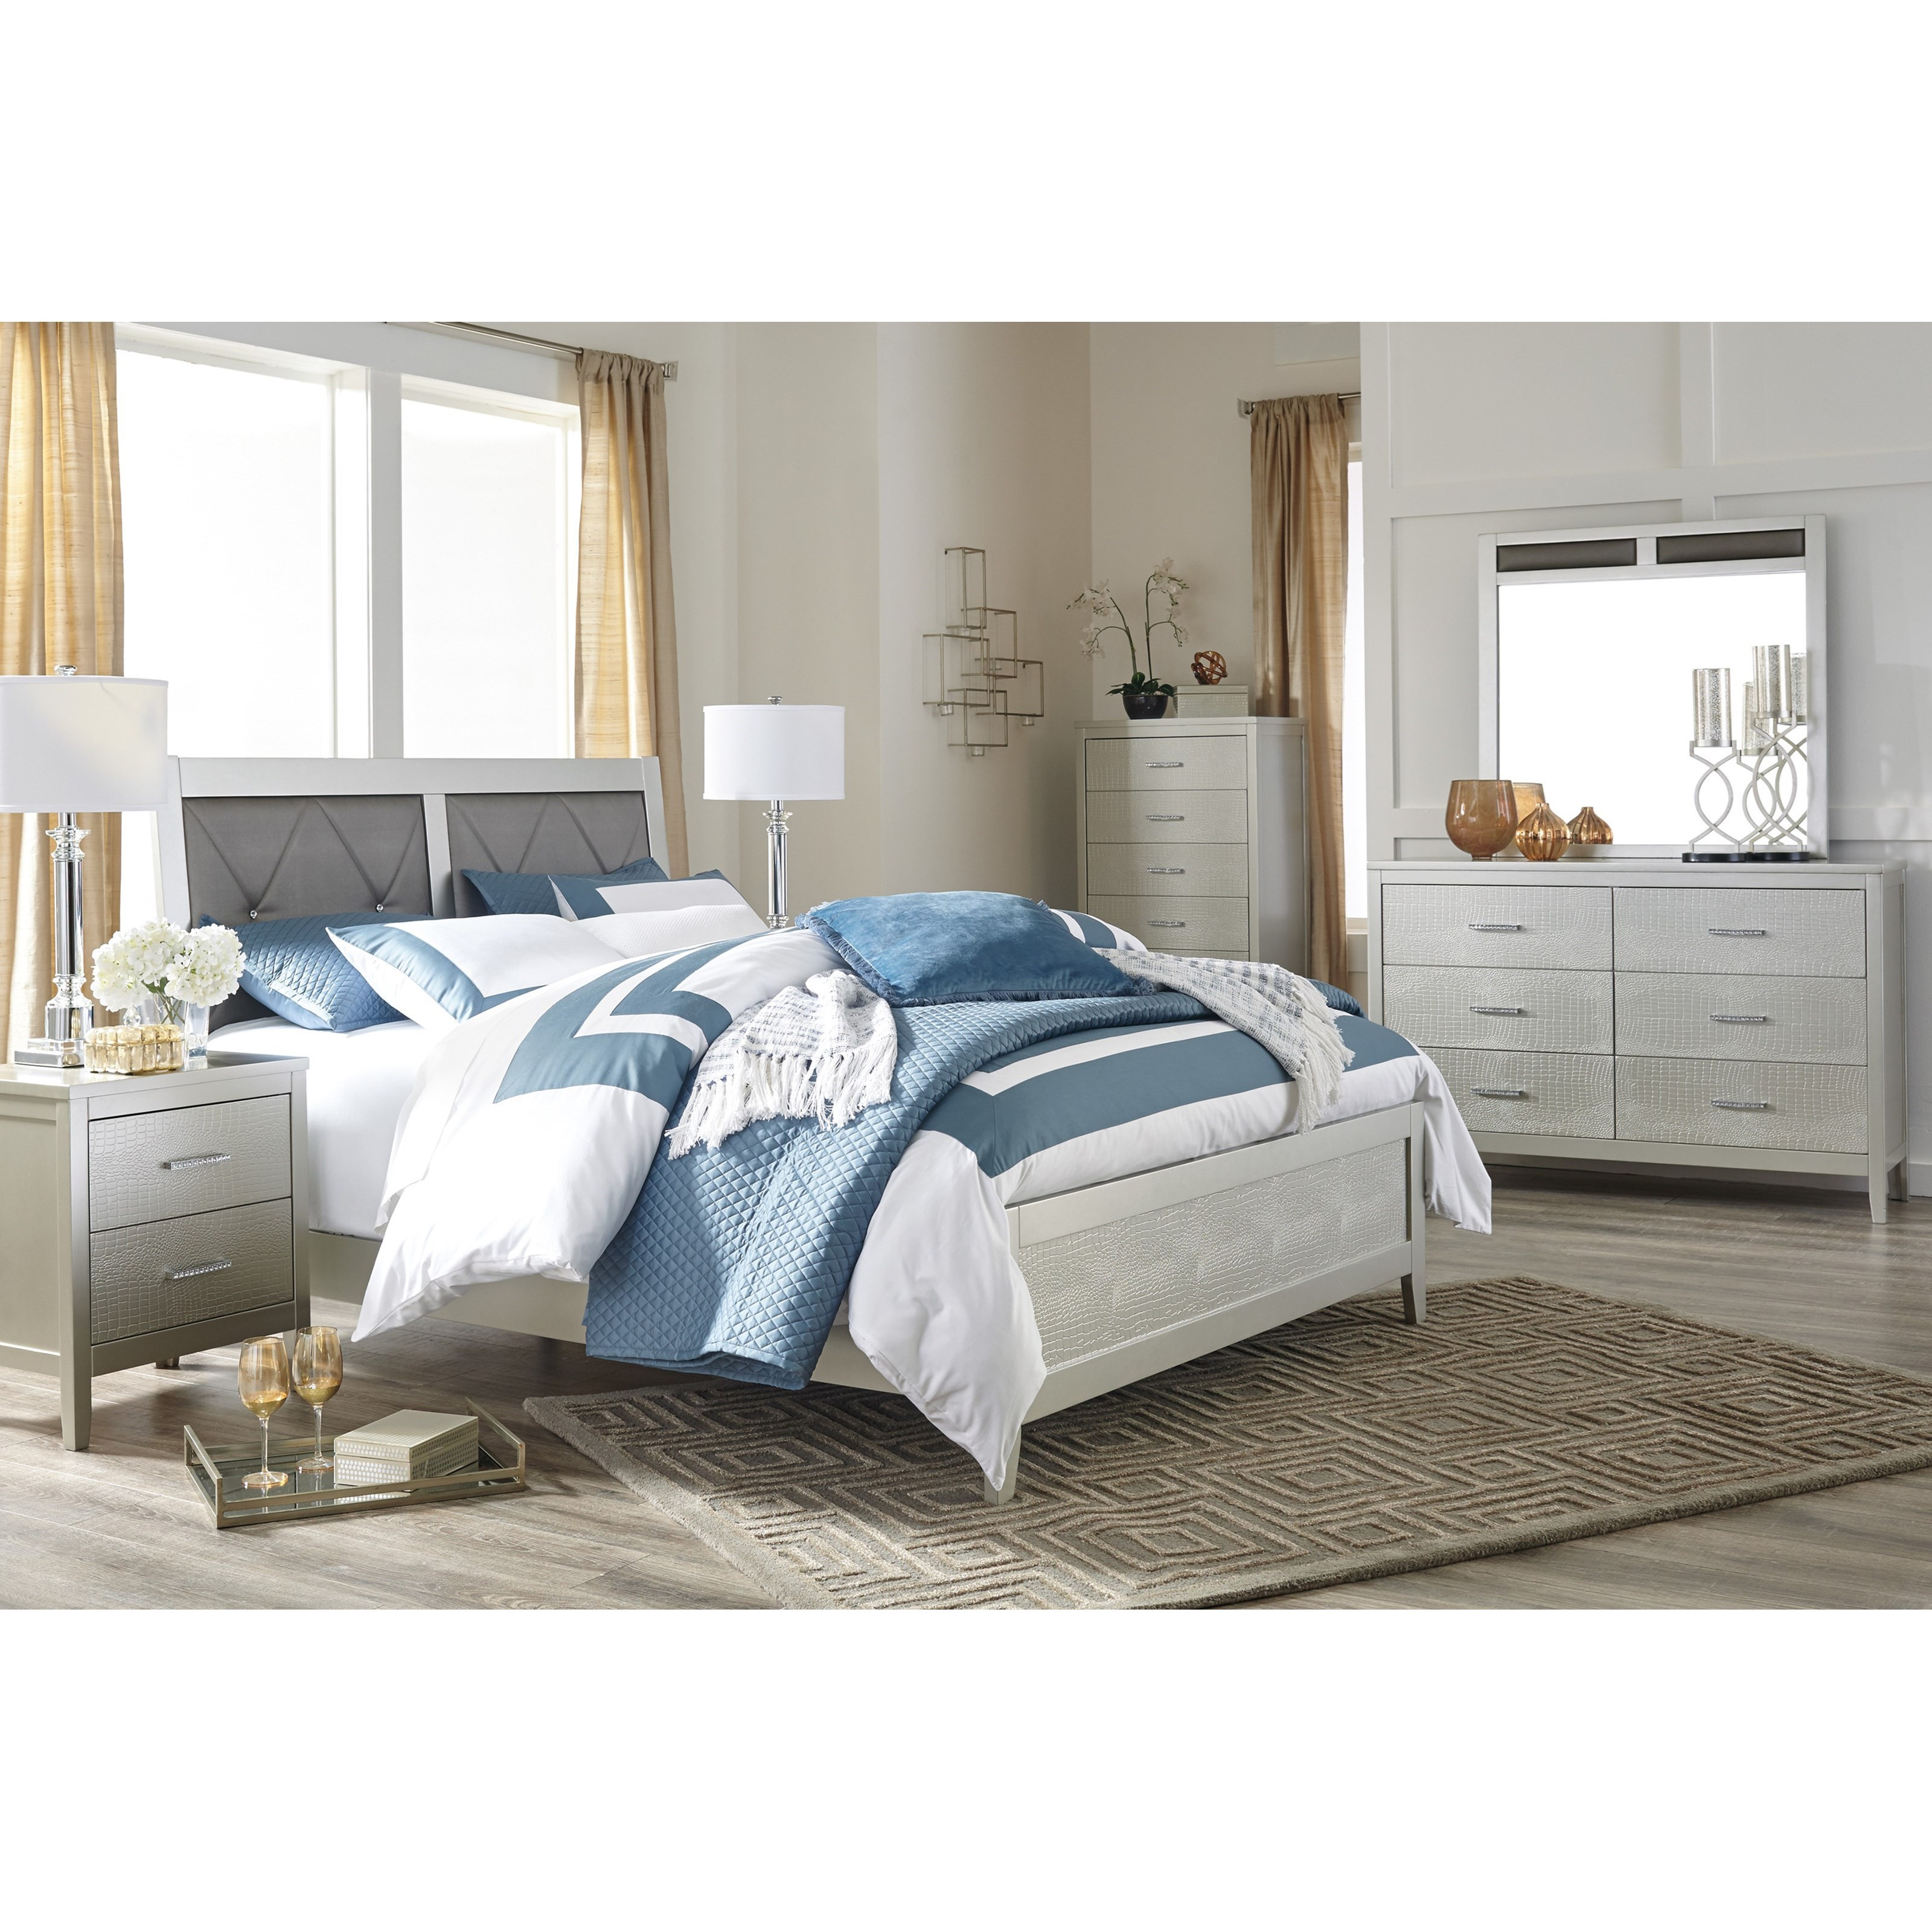 Glam King Bedroom Group by Signature Design by Ashley | Wolf ...